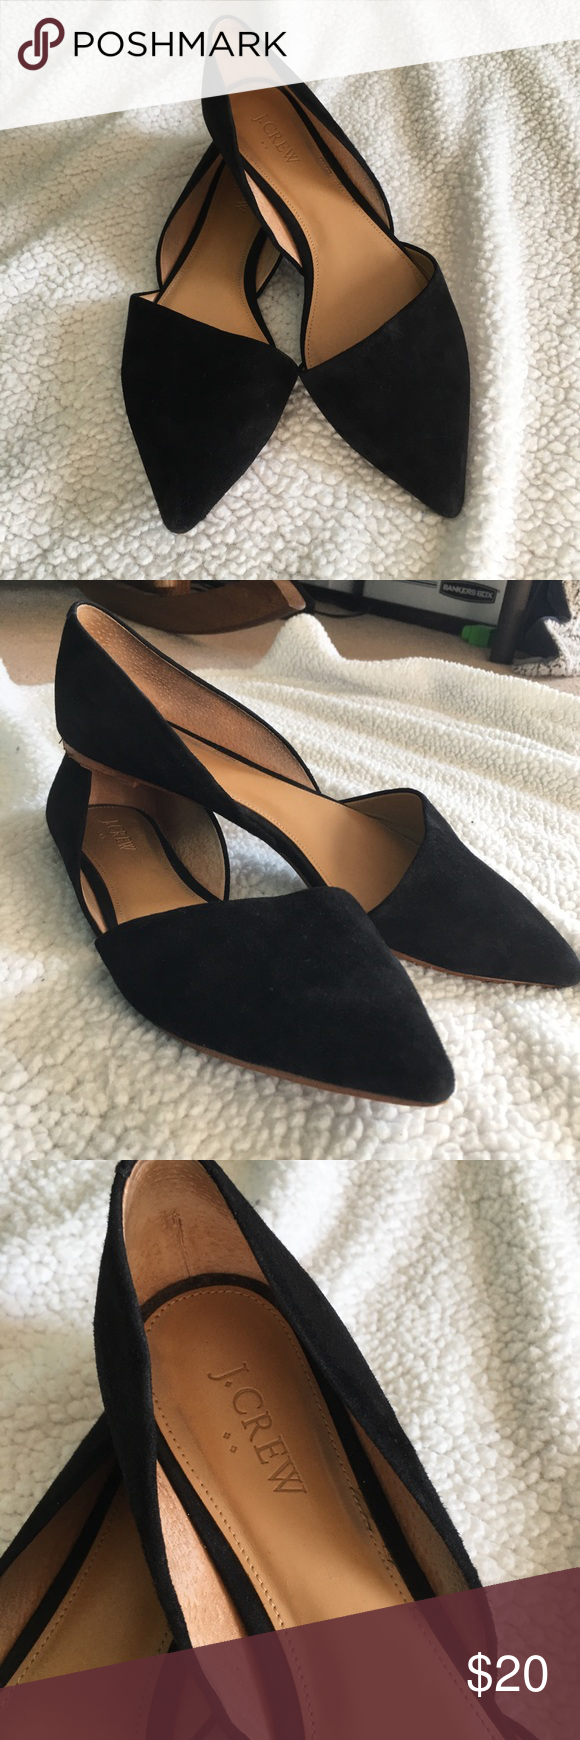 J Crew Factory Black Zoe Suede D Orsay Flats 9 5 Suede Flat Shoes Women Loafer Flats